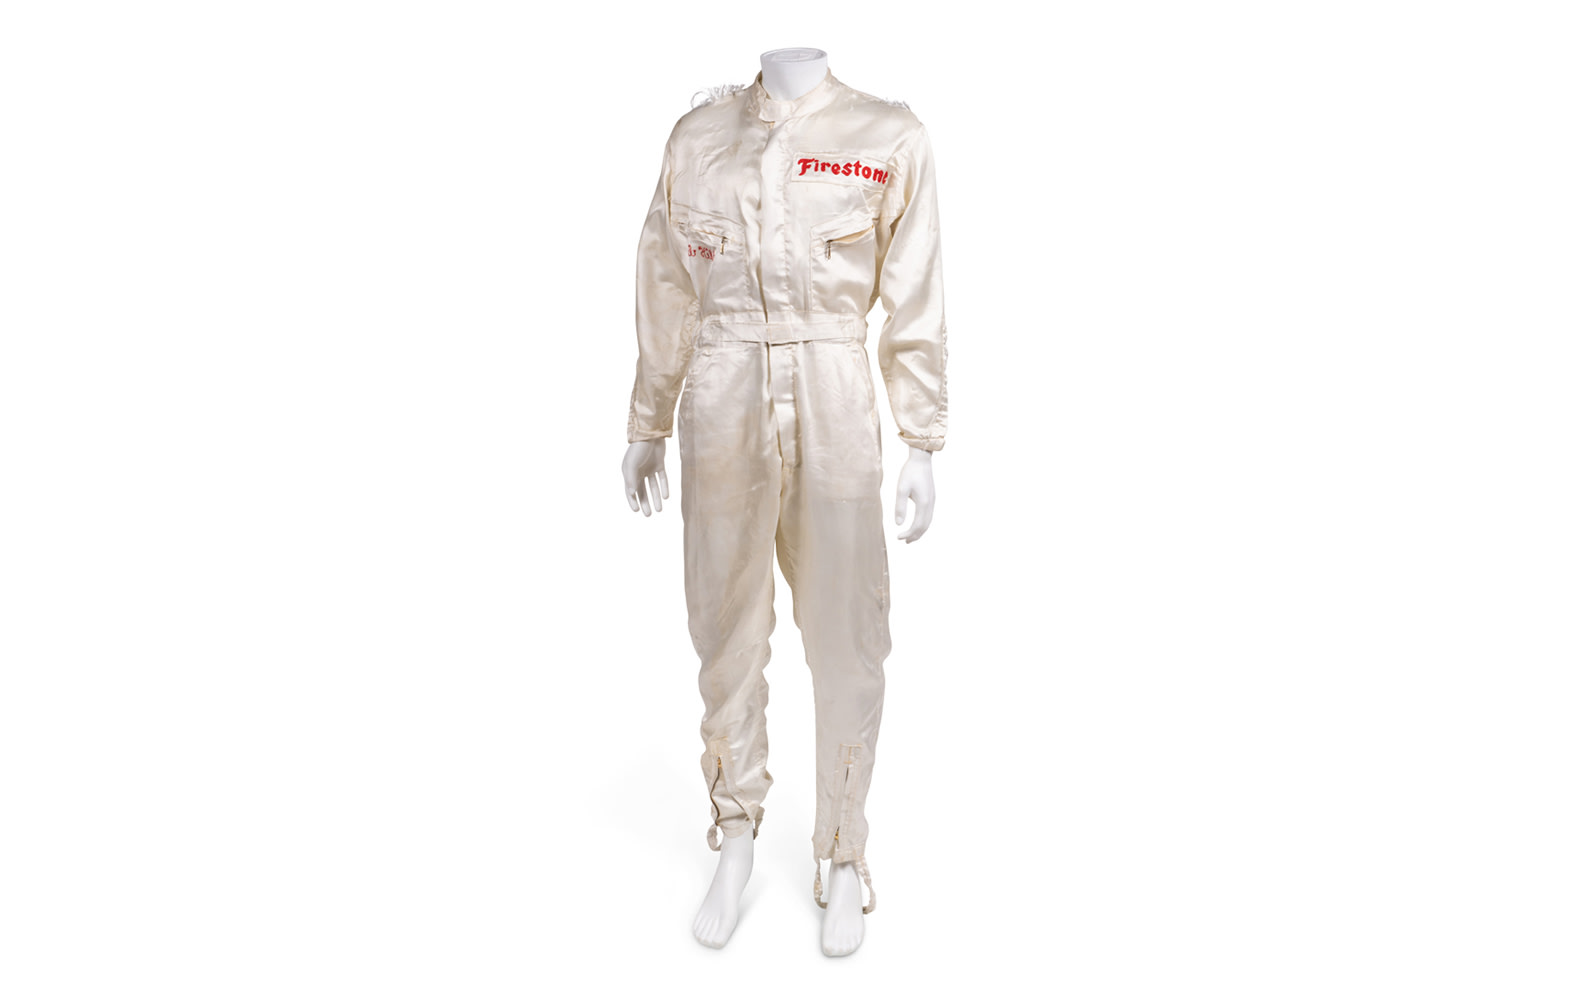 One-Piece Driving Suit Used During Phil Hill's Time with the Chaparral Racing Team (Damaged)